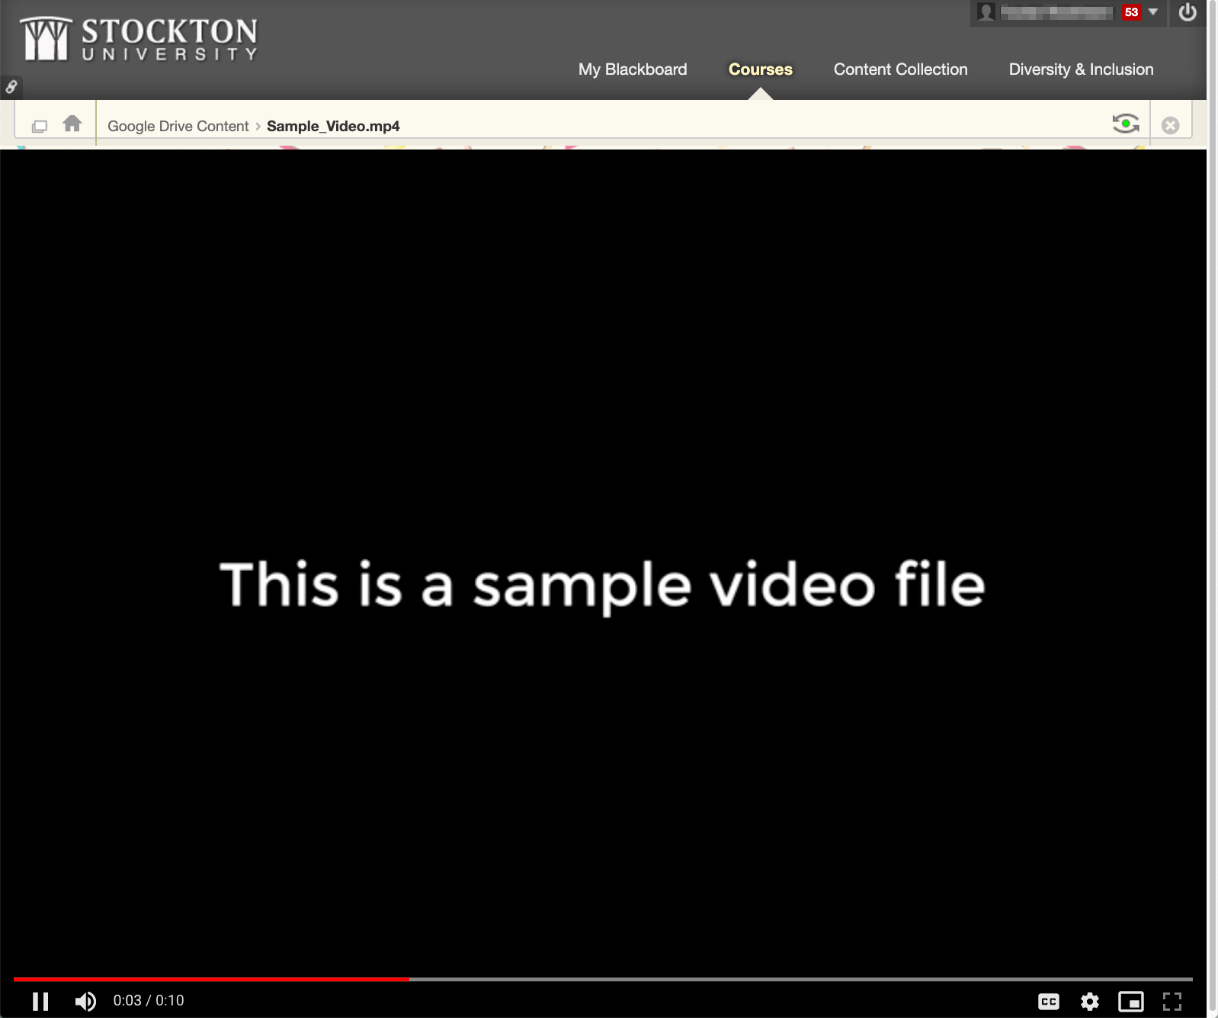 A screenshot of an embedded video file playing within Blackboard.